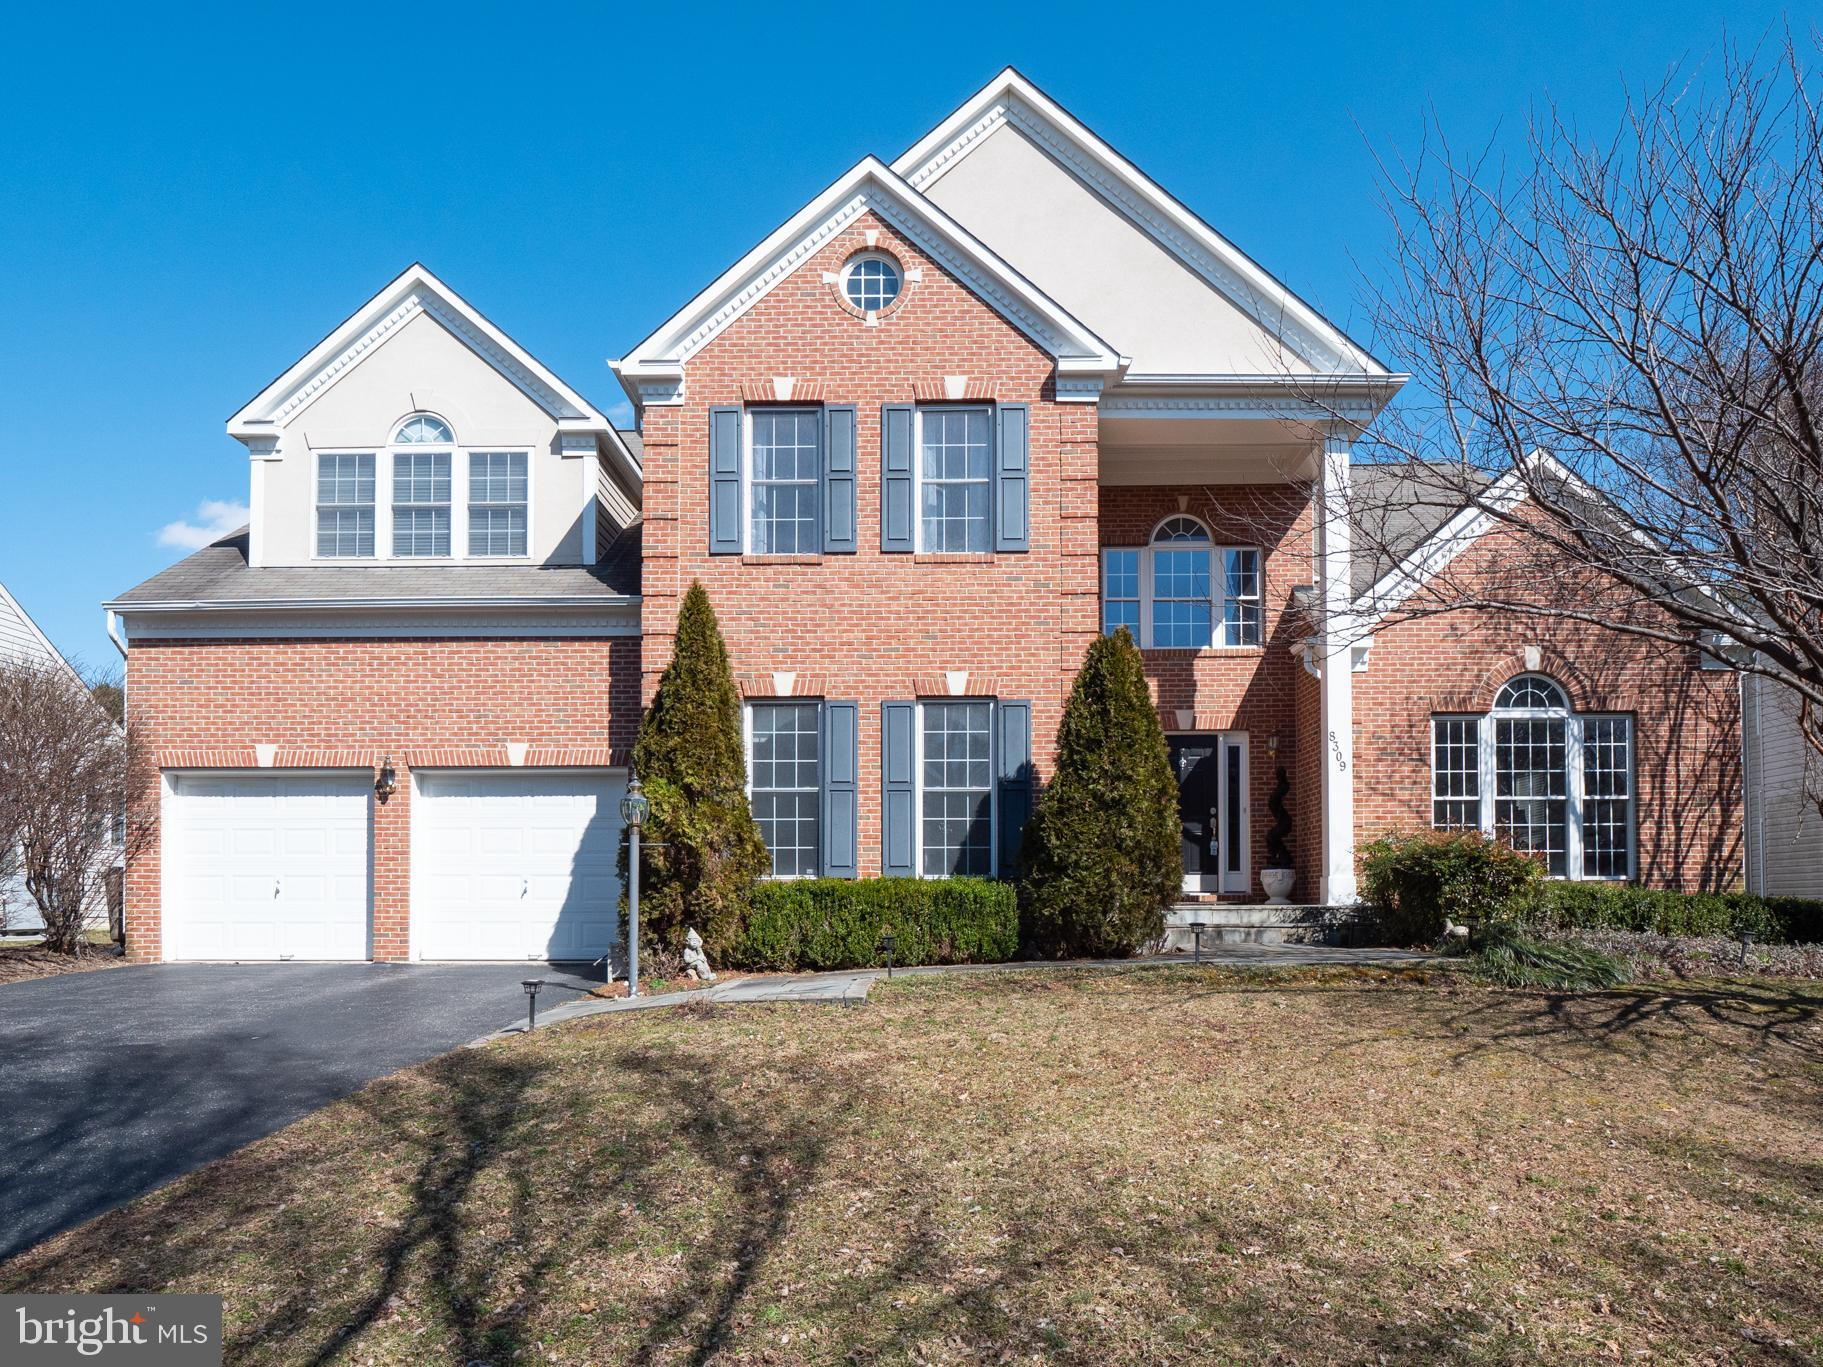 8309 HOPE POINT COURT, MILLERSVILLE, MD 21108